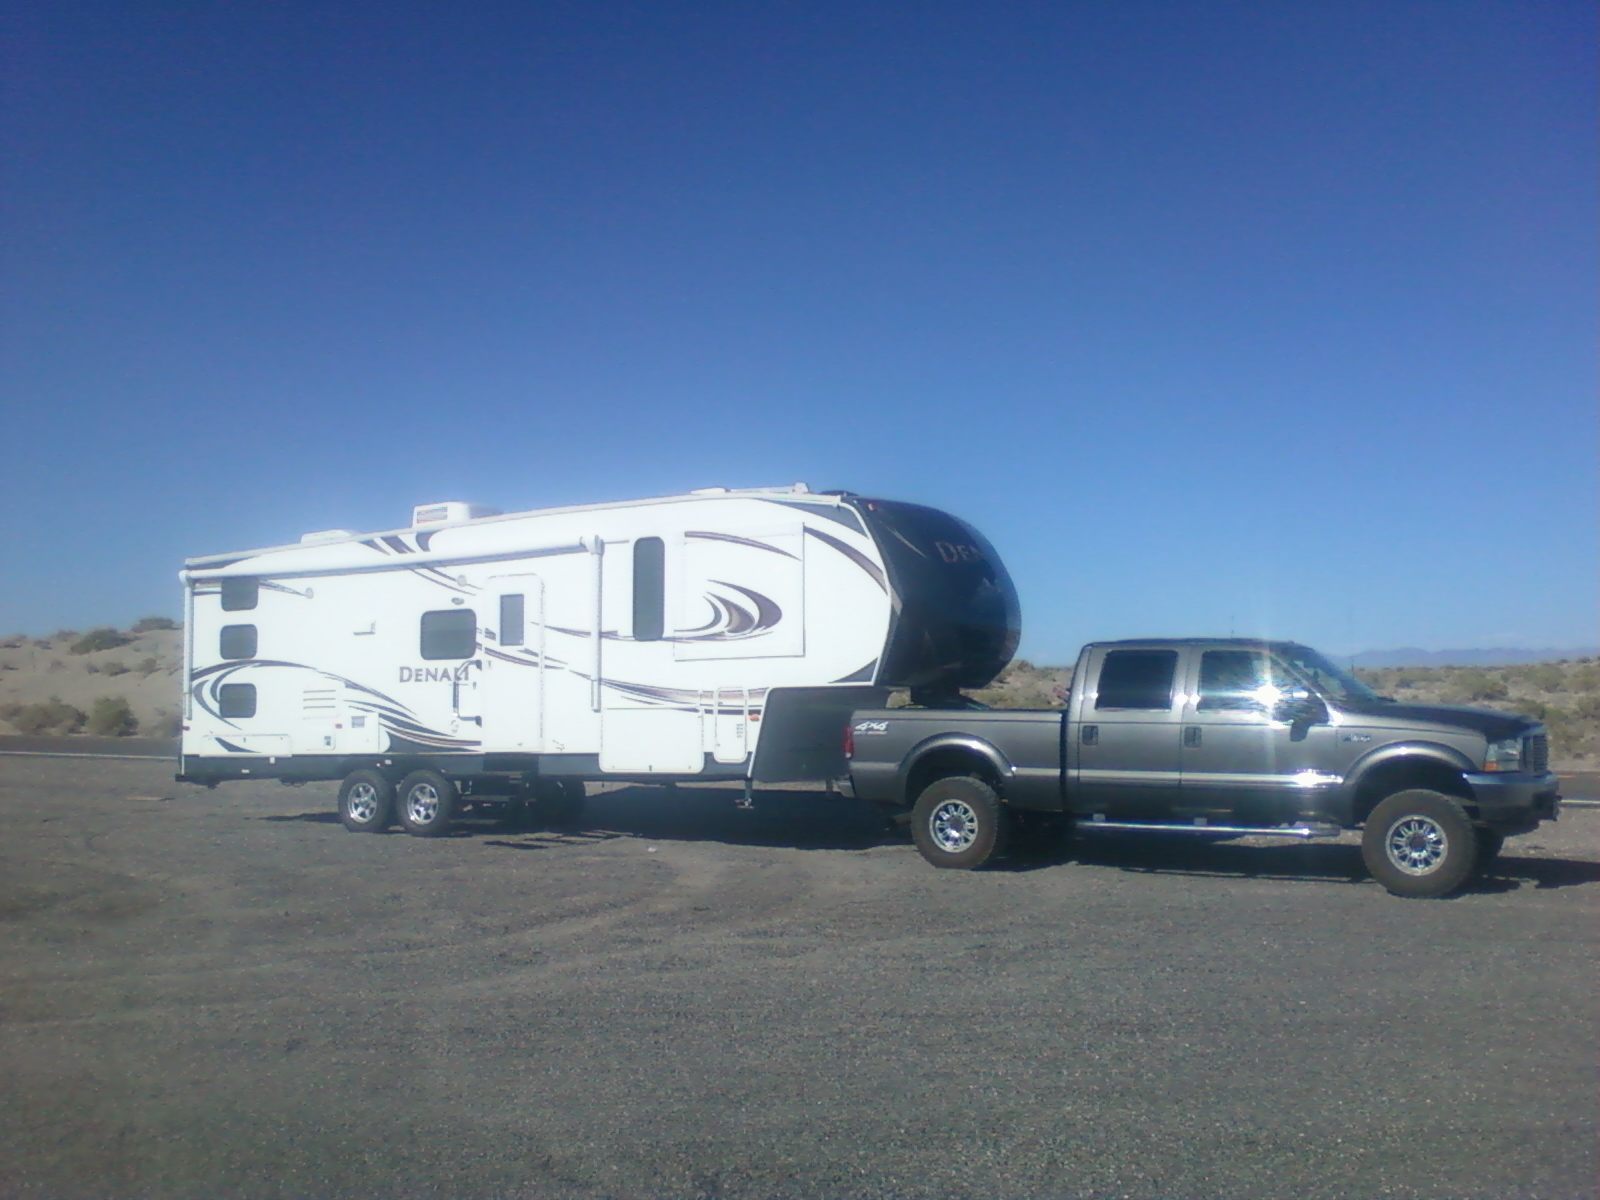 Advice on possible upgrade to fifth wheel trailer 0702121734a jpg